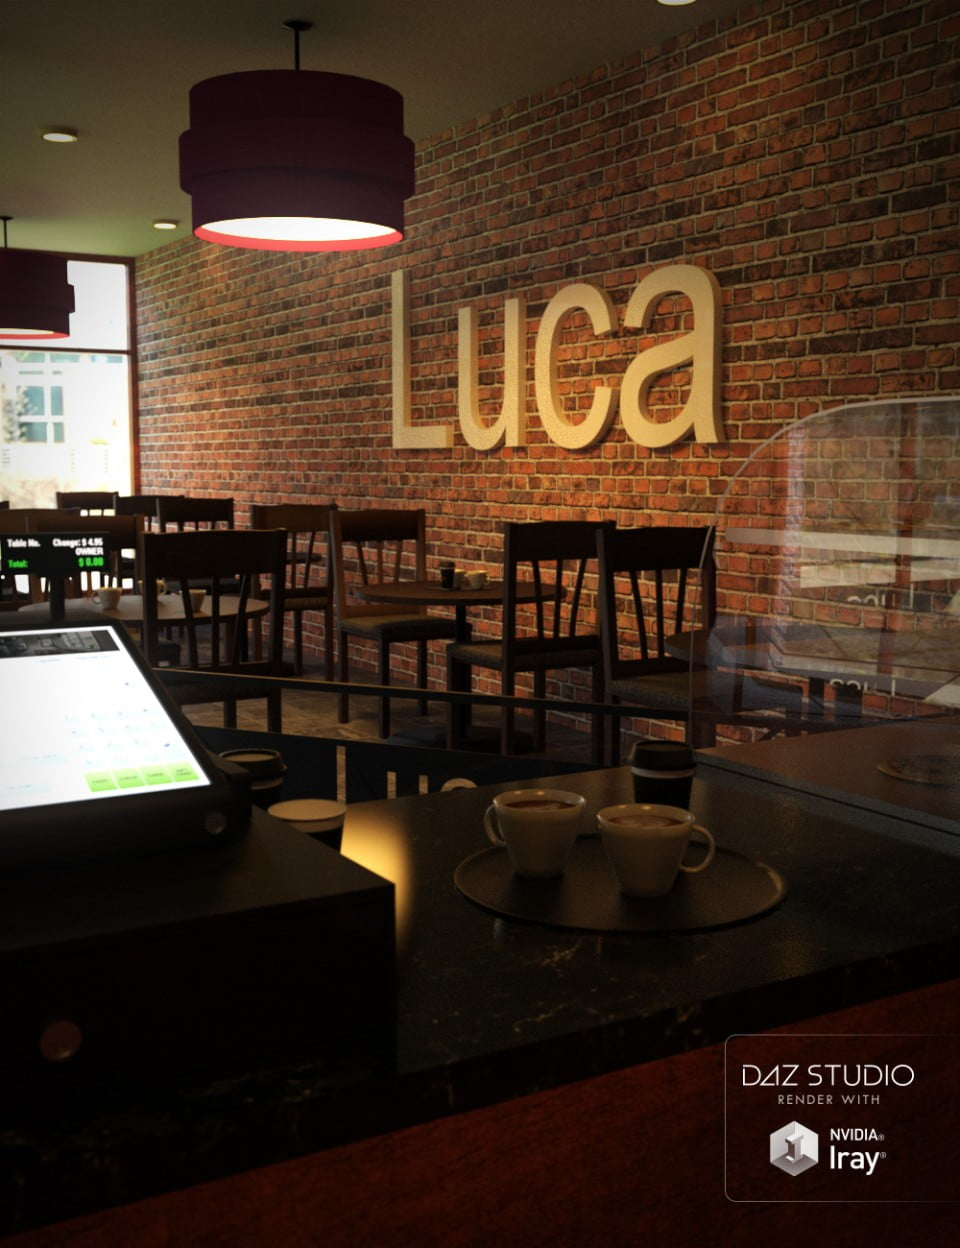 00-main-cafe-luca-daz3d